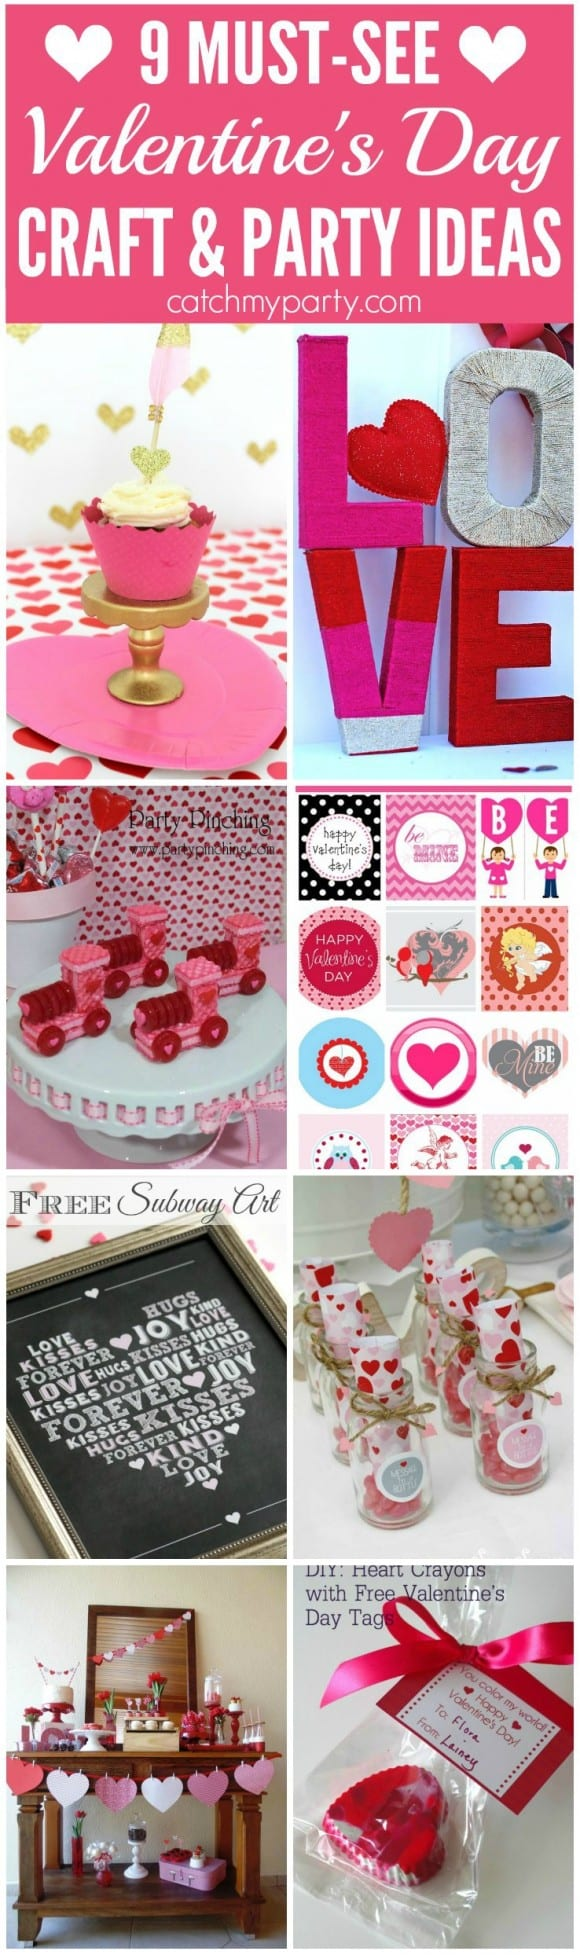 9 Must-See Valentine's Day Crafts & Party Ideas | CatchMyParty.com